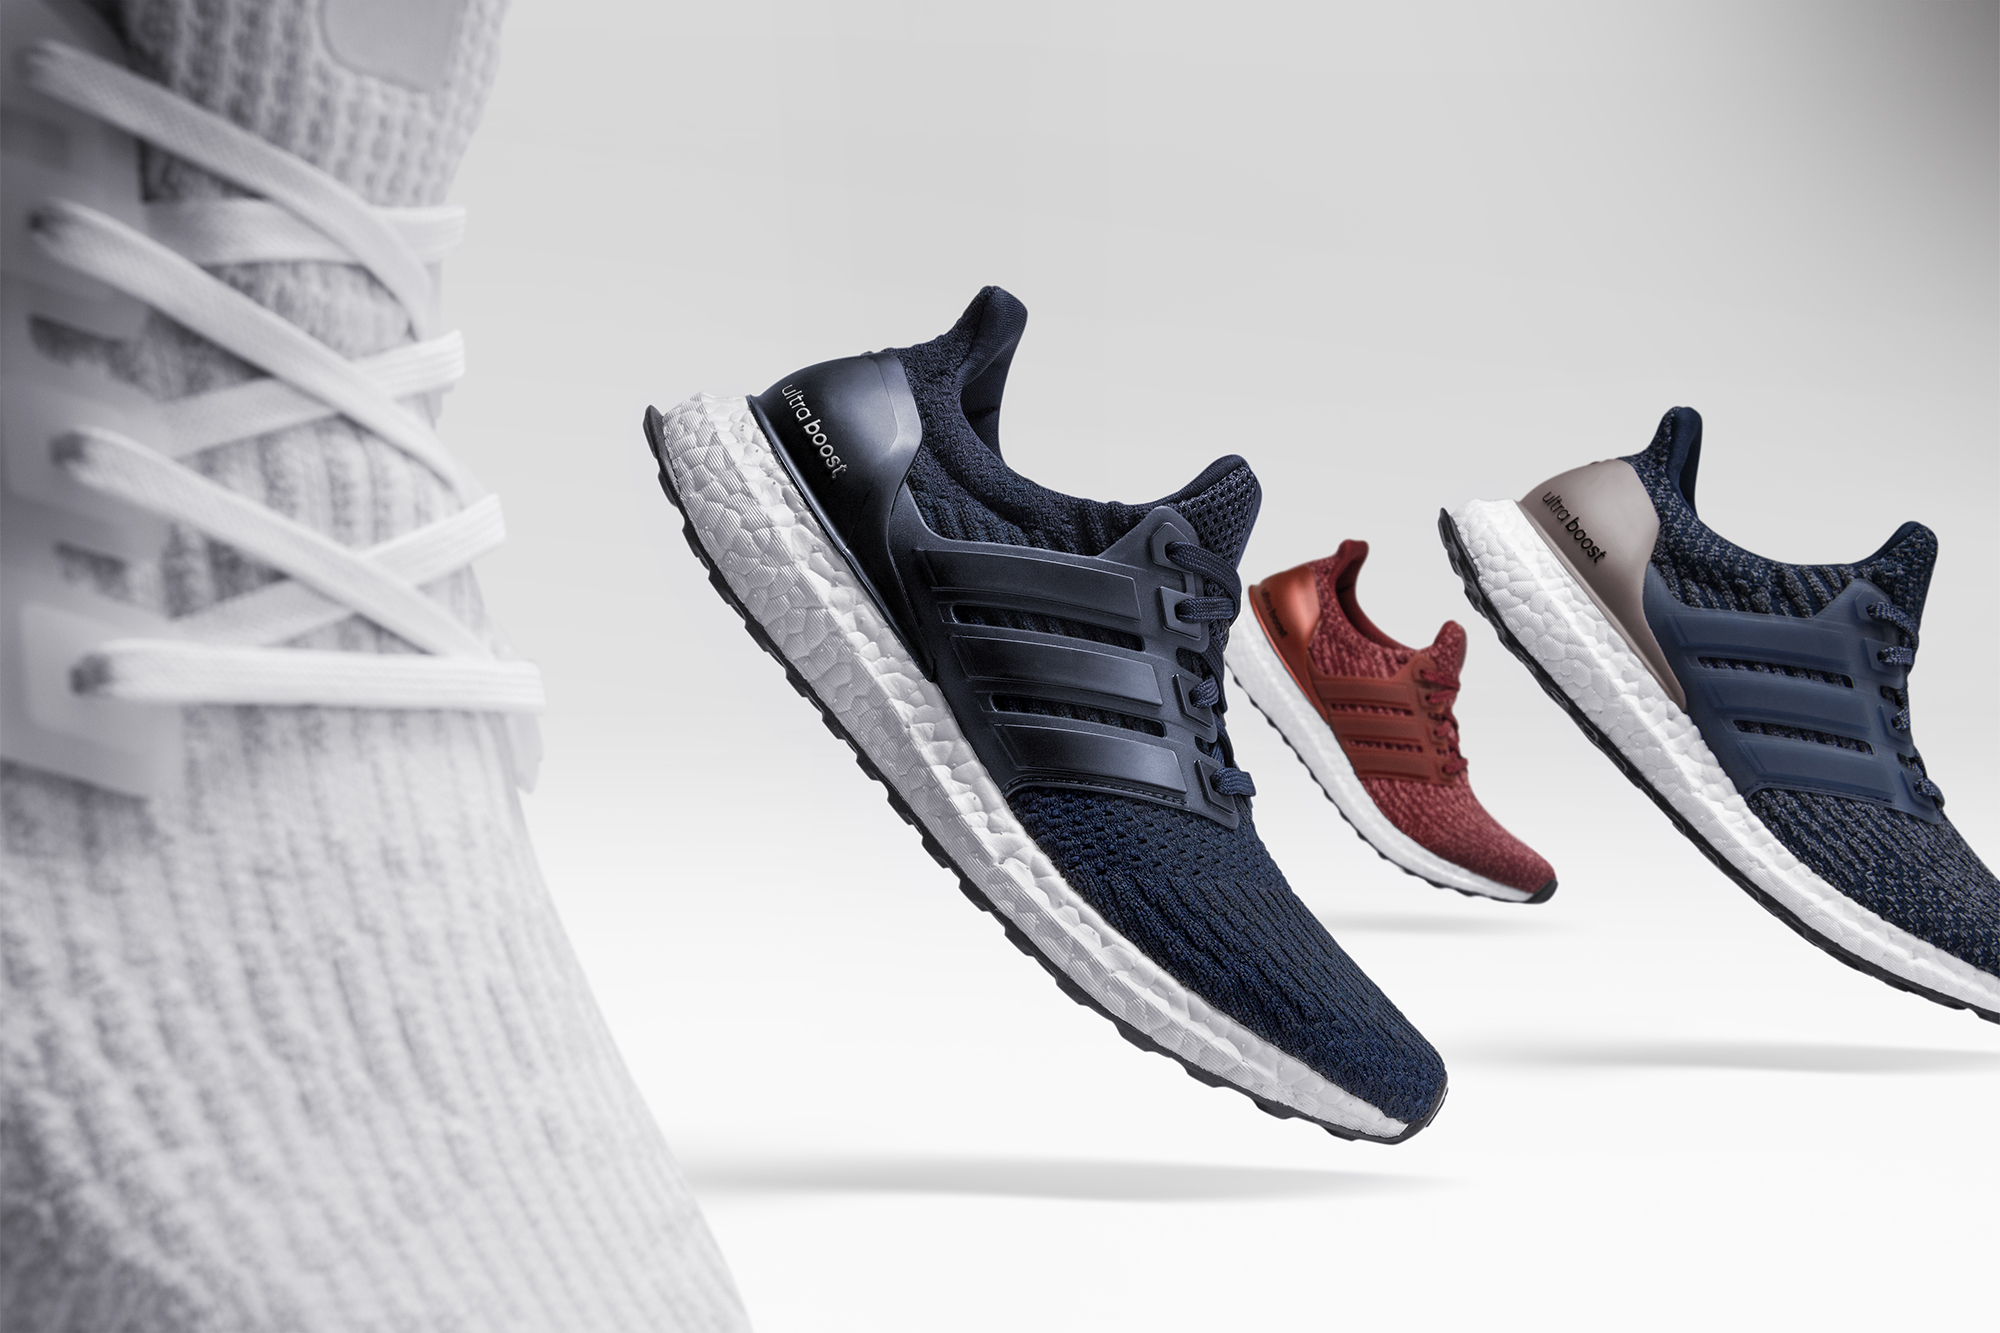 adi_ultraboost_dec_pr_womens_03